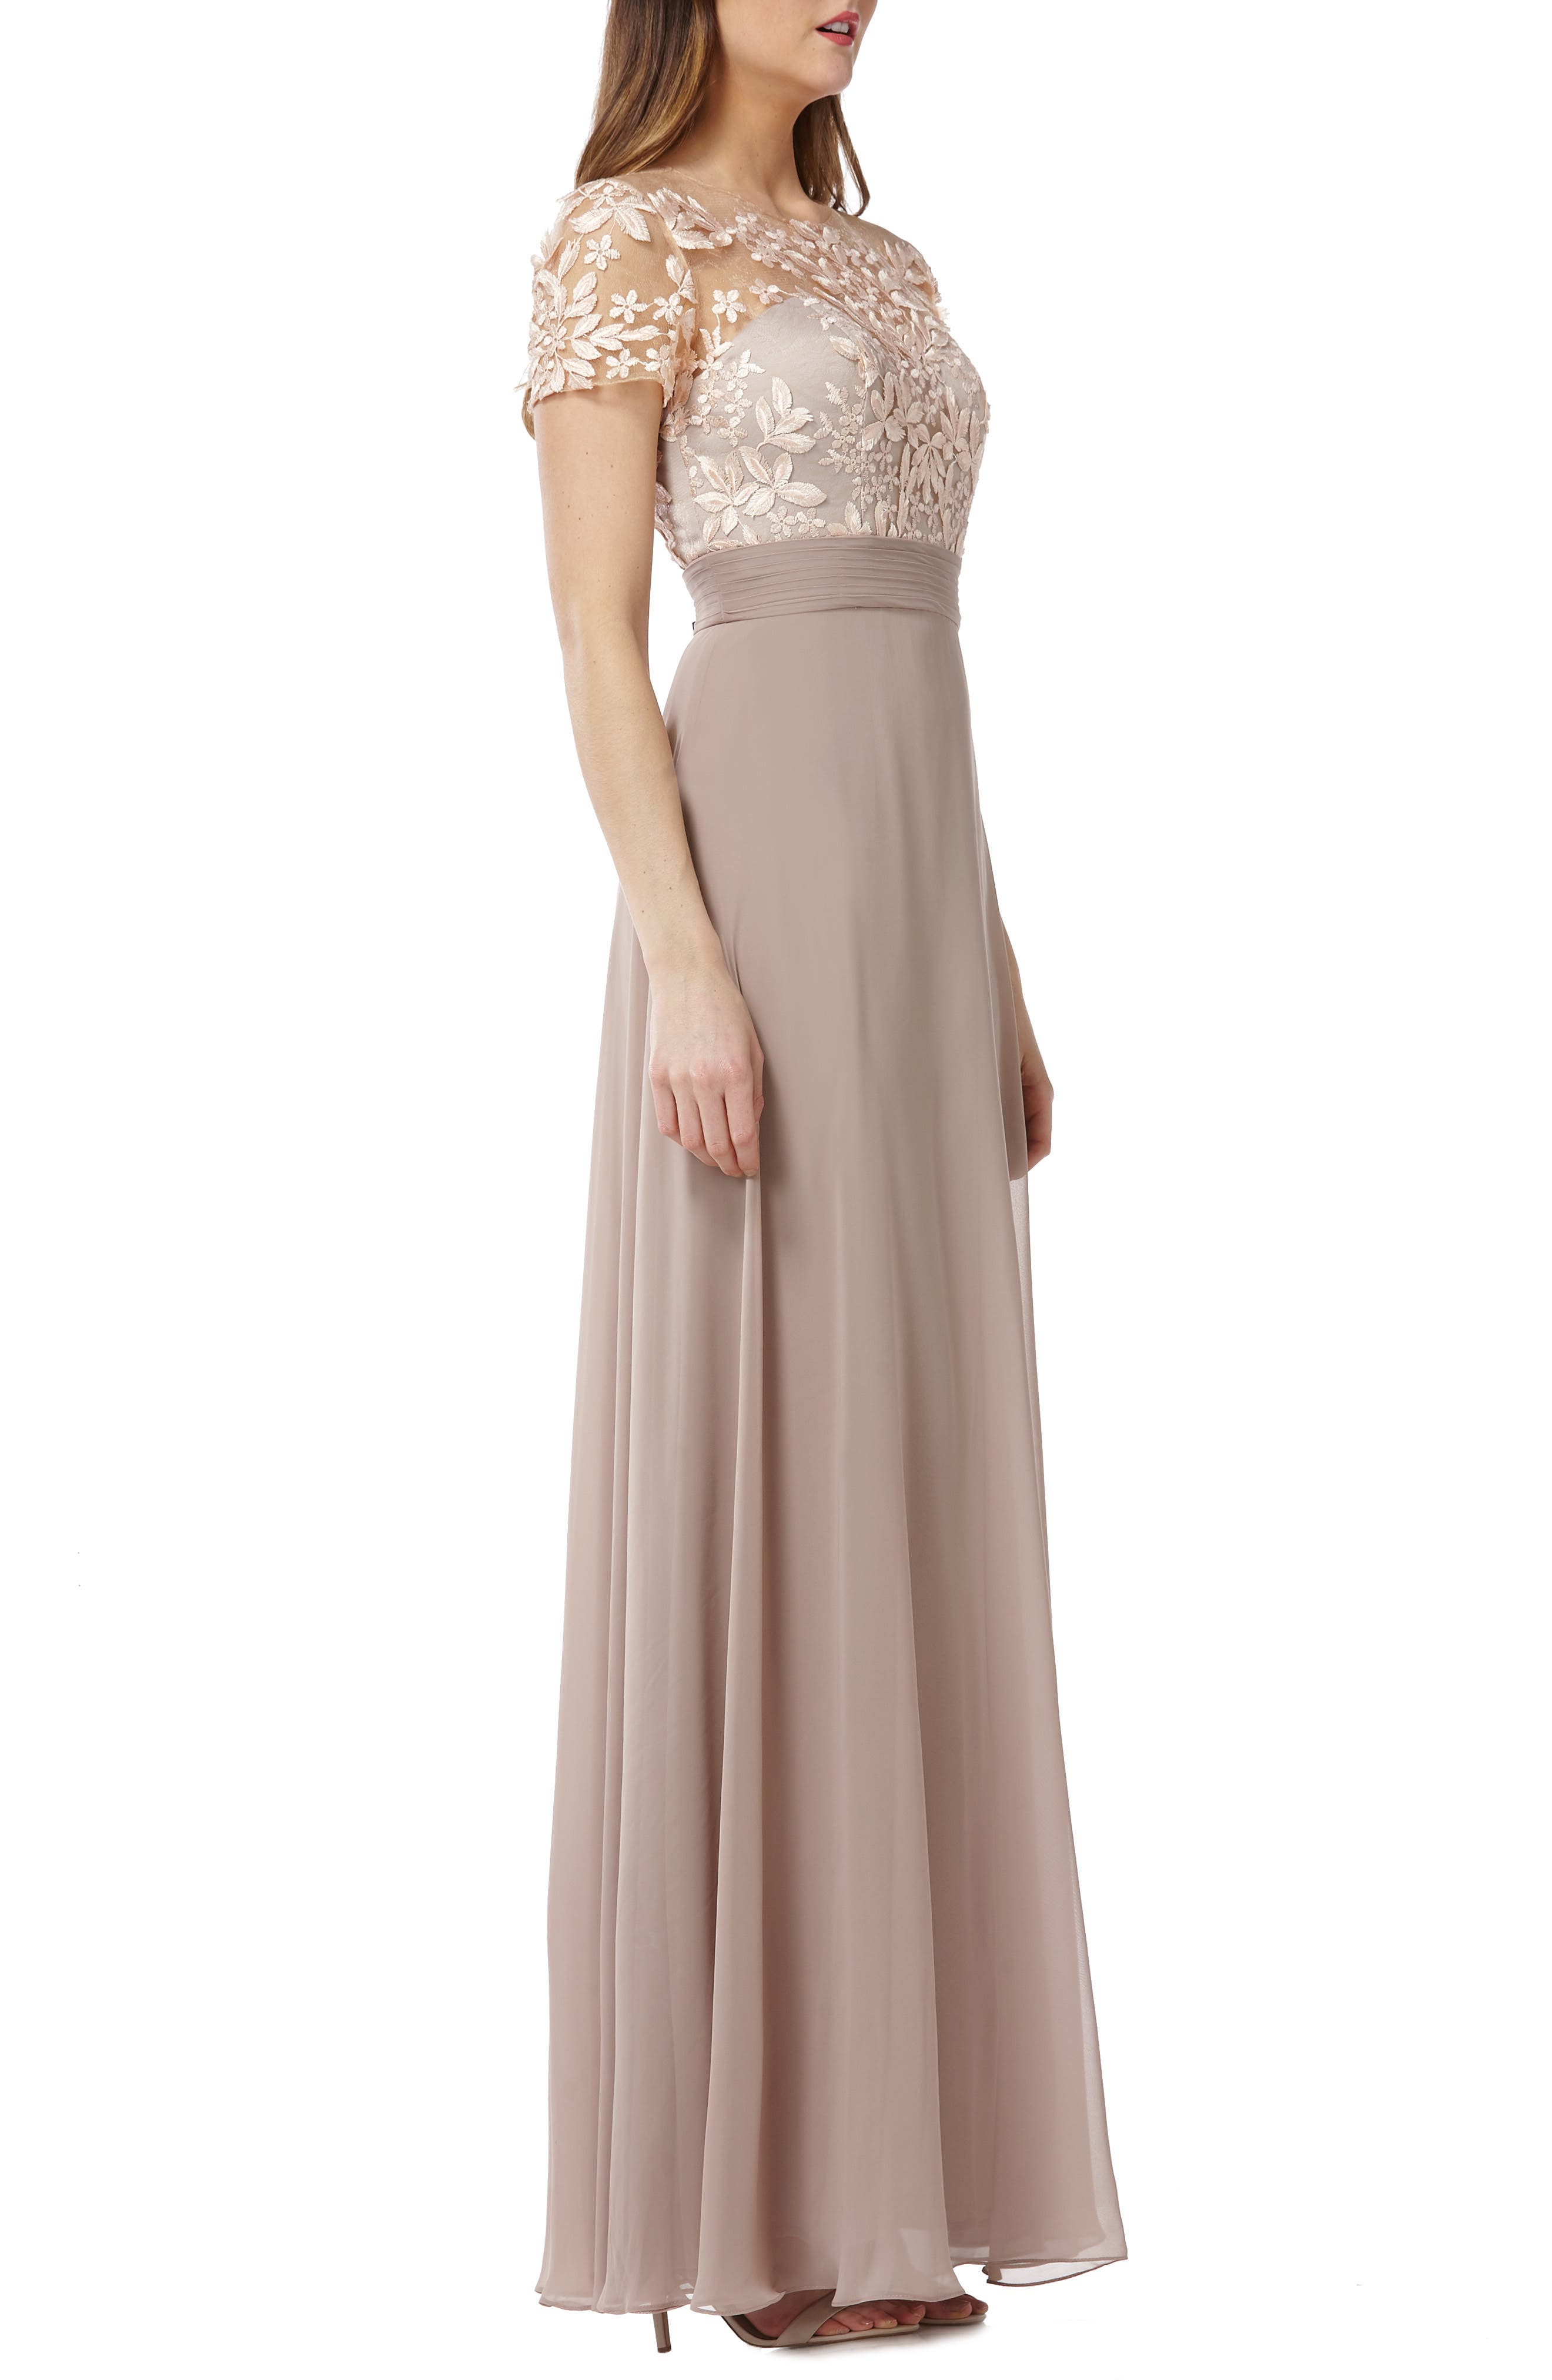 Embroidered Illusion Bodice Gown,                             Alternate thumbnail 3, color,                             BLUSH/ NUDE